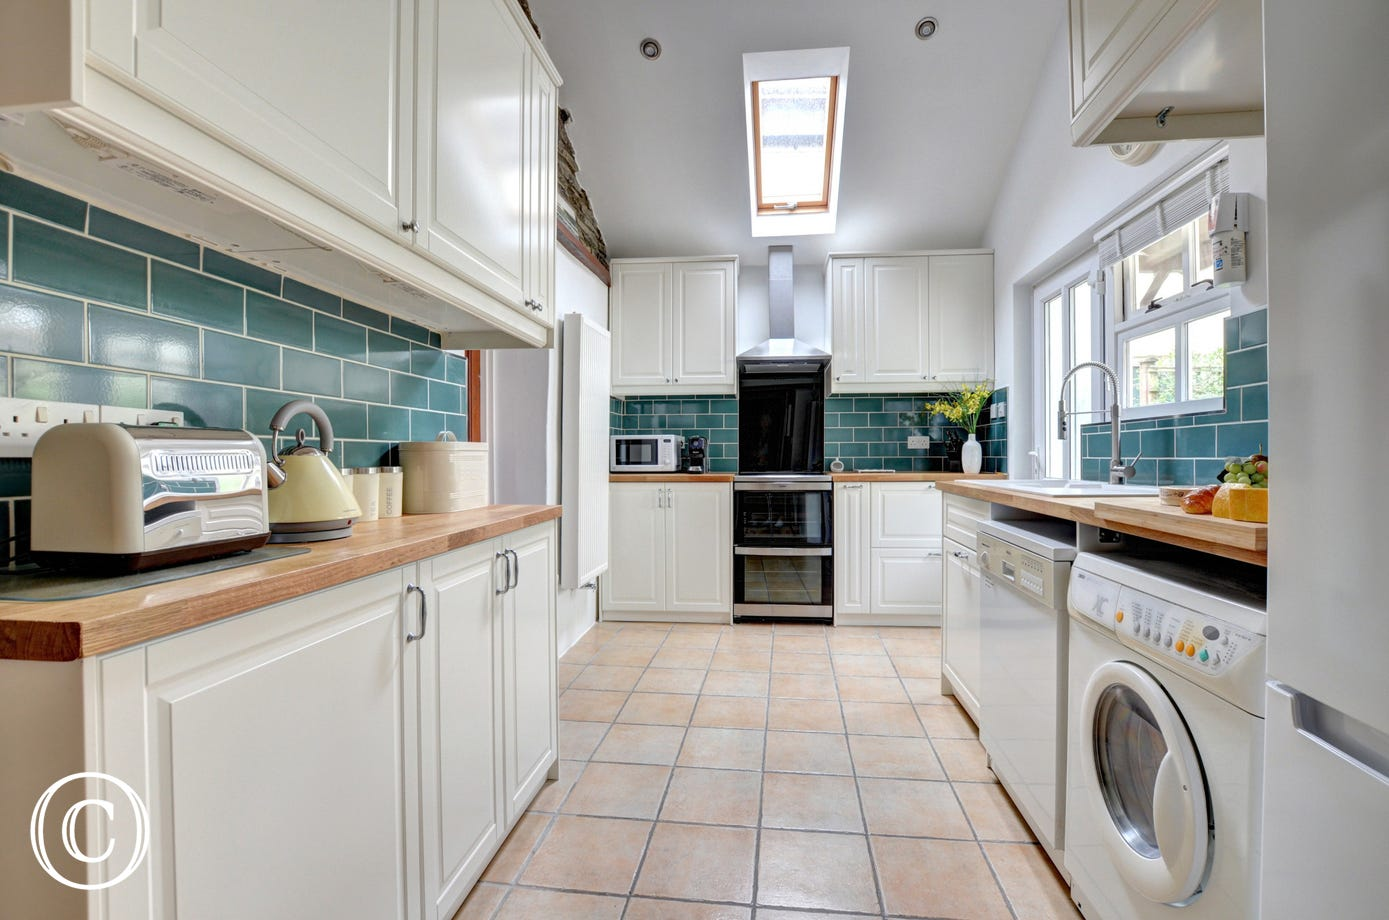 Well equipped galley styled kitchen